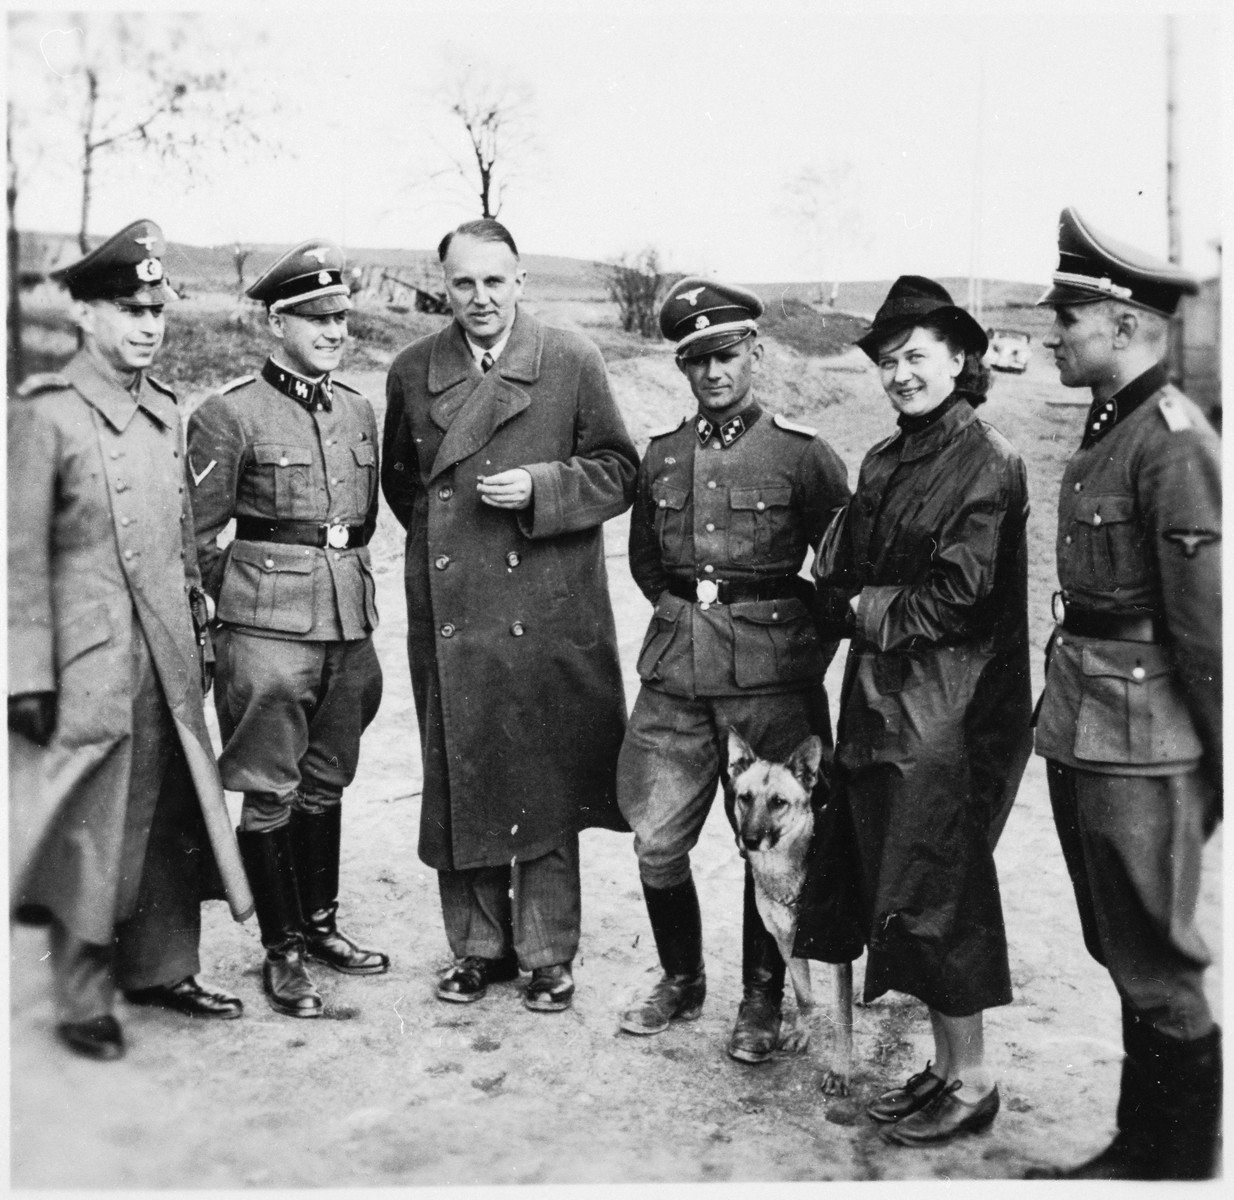 A group of SS officers, a woman and a dog stand on the grounds of the Gross-Rosen concentration camp.  Anton Thumann is pictured third from the right.  The man in the center is  Prof. Gerhard Buhtz, forensic medicine specialist from Breslau.